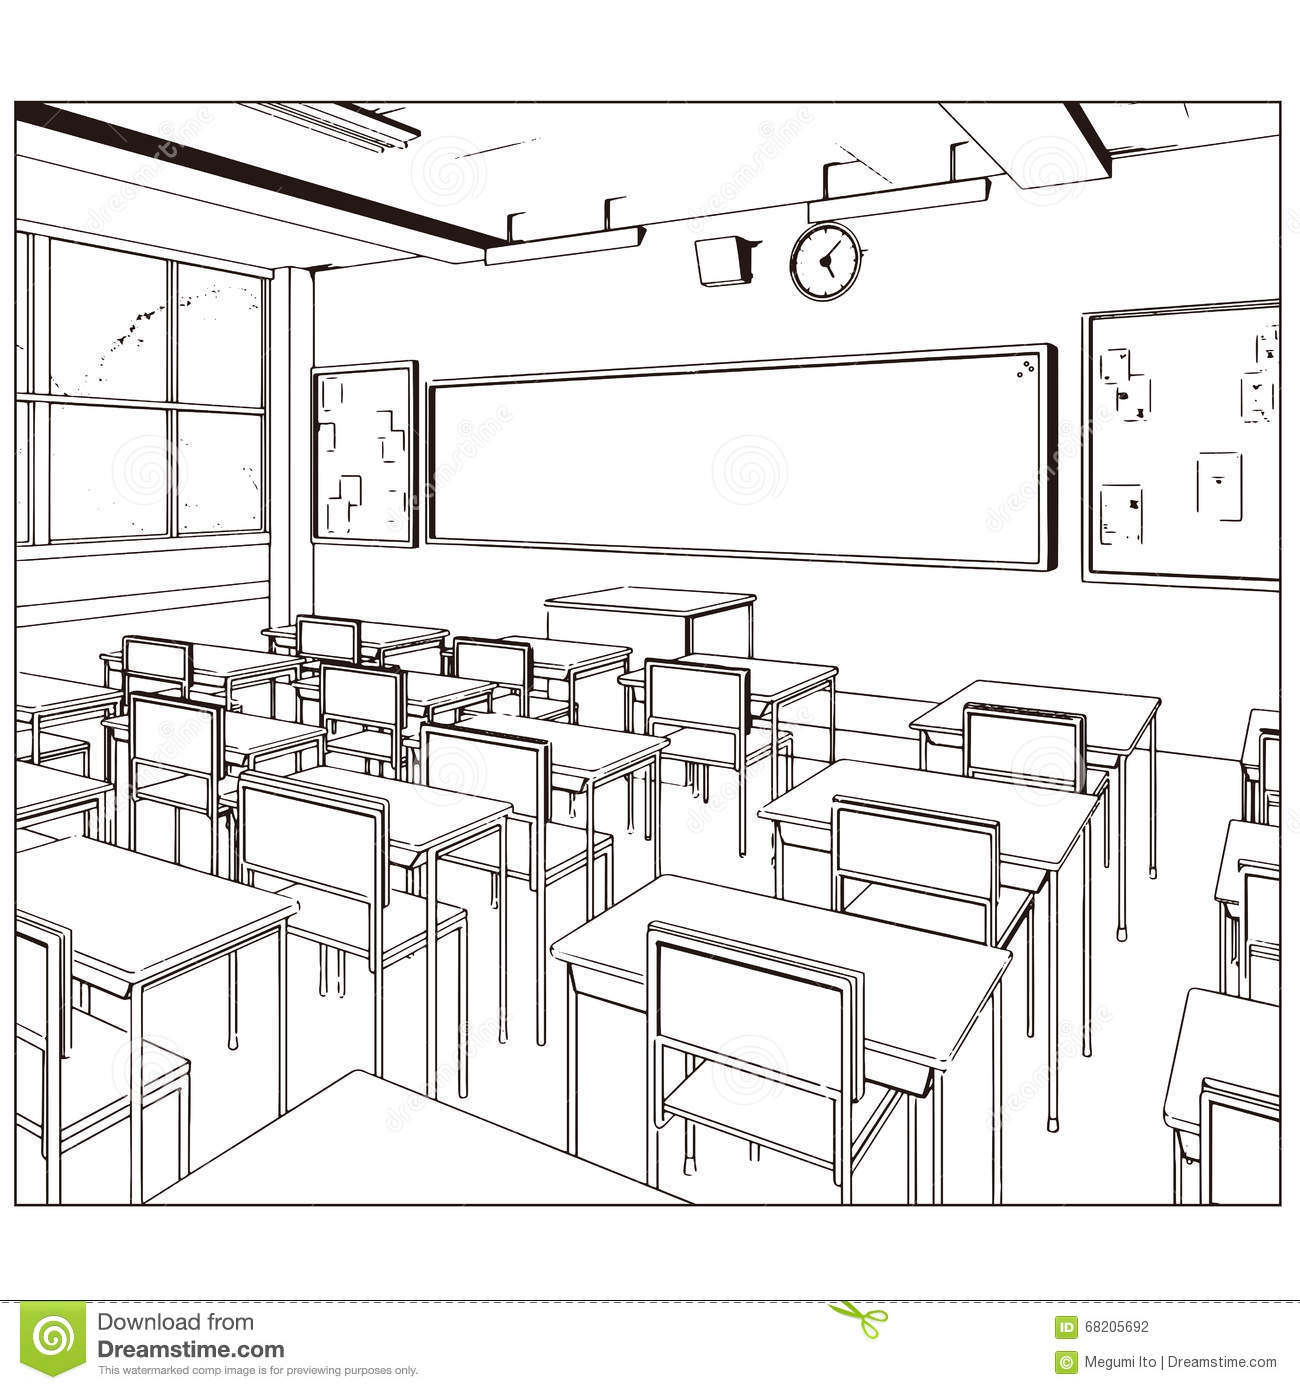 Architecture Drawing Class vector drawing of a class room stock vector - image: 68205692